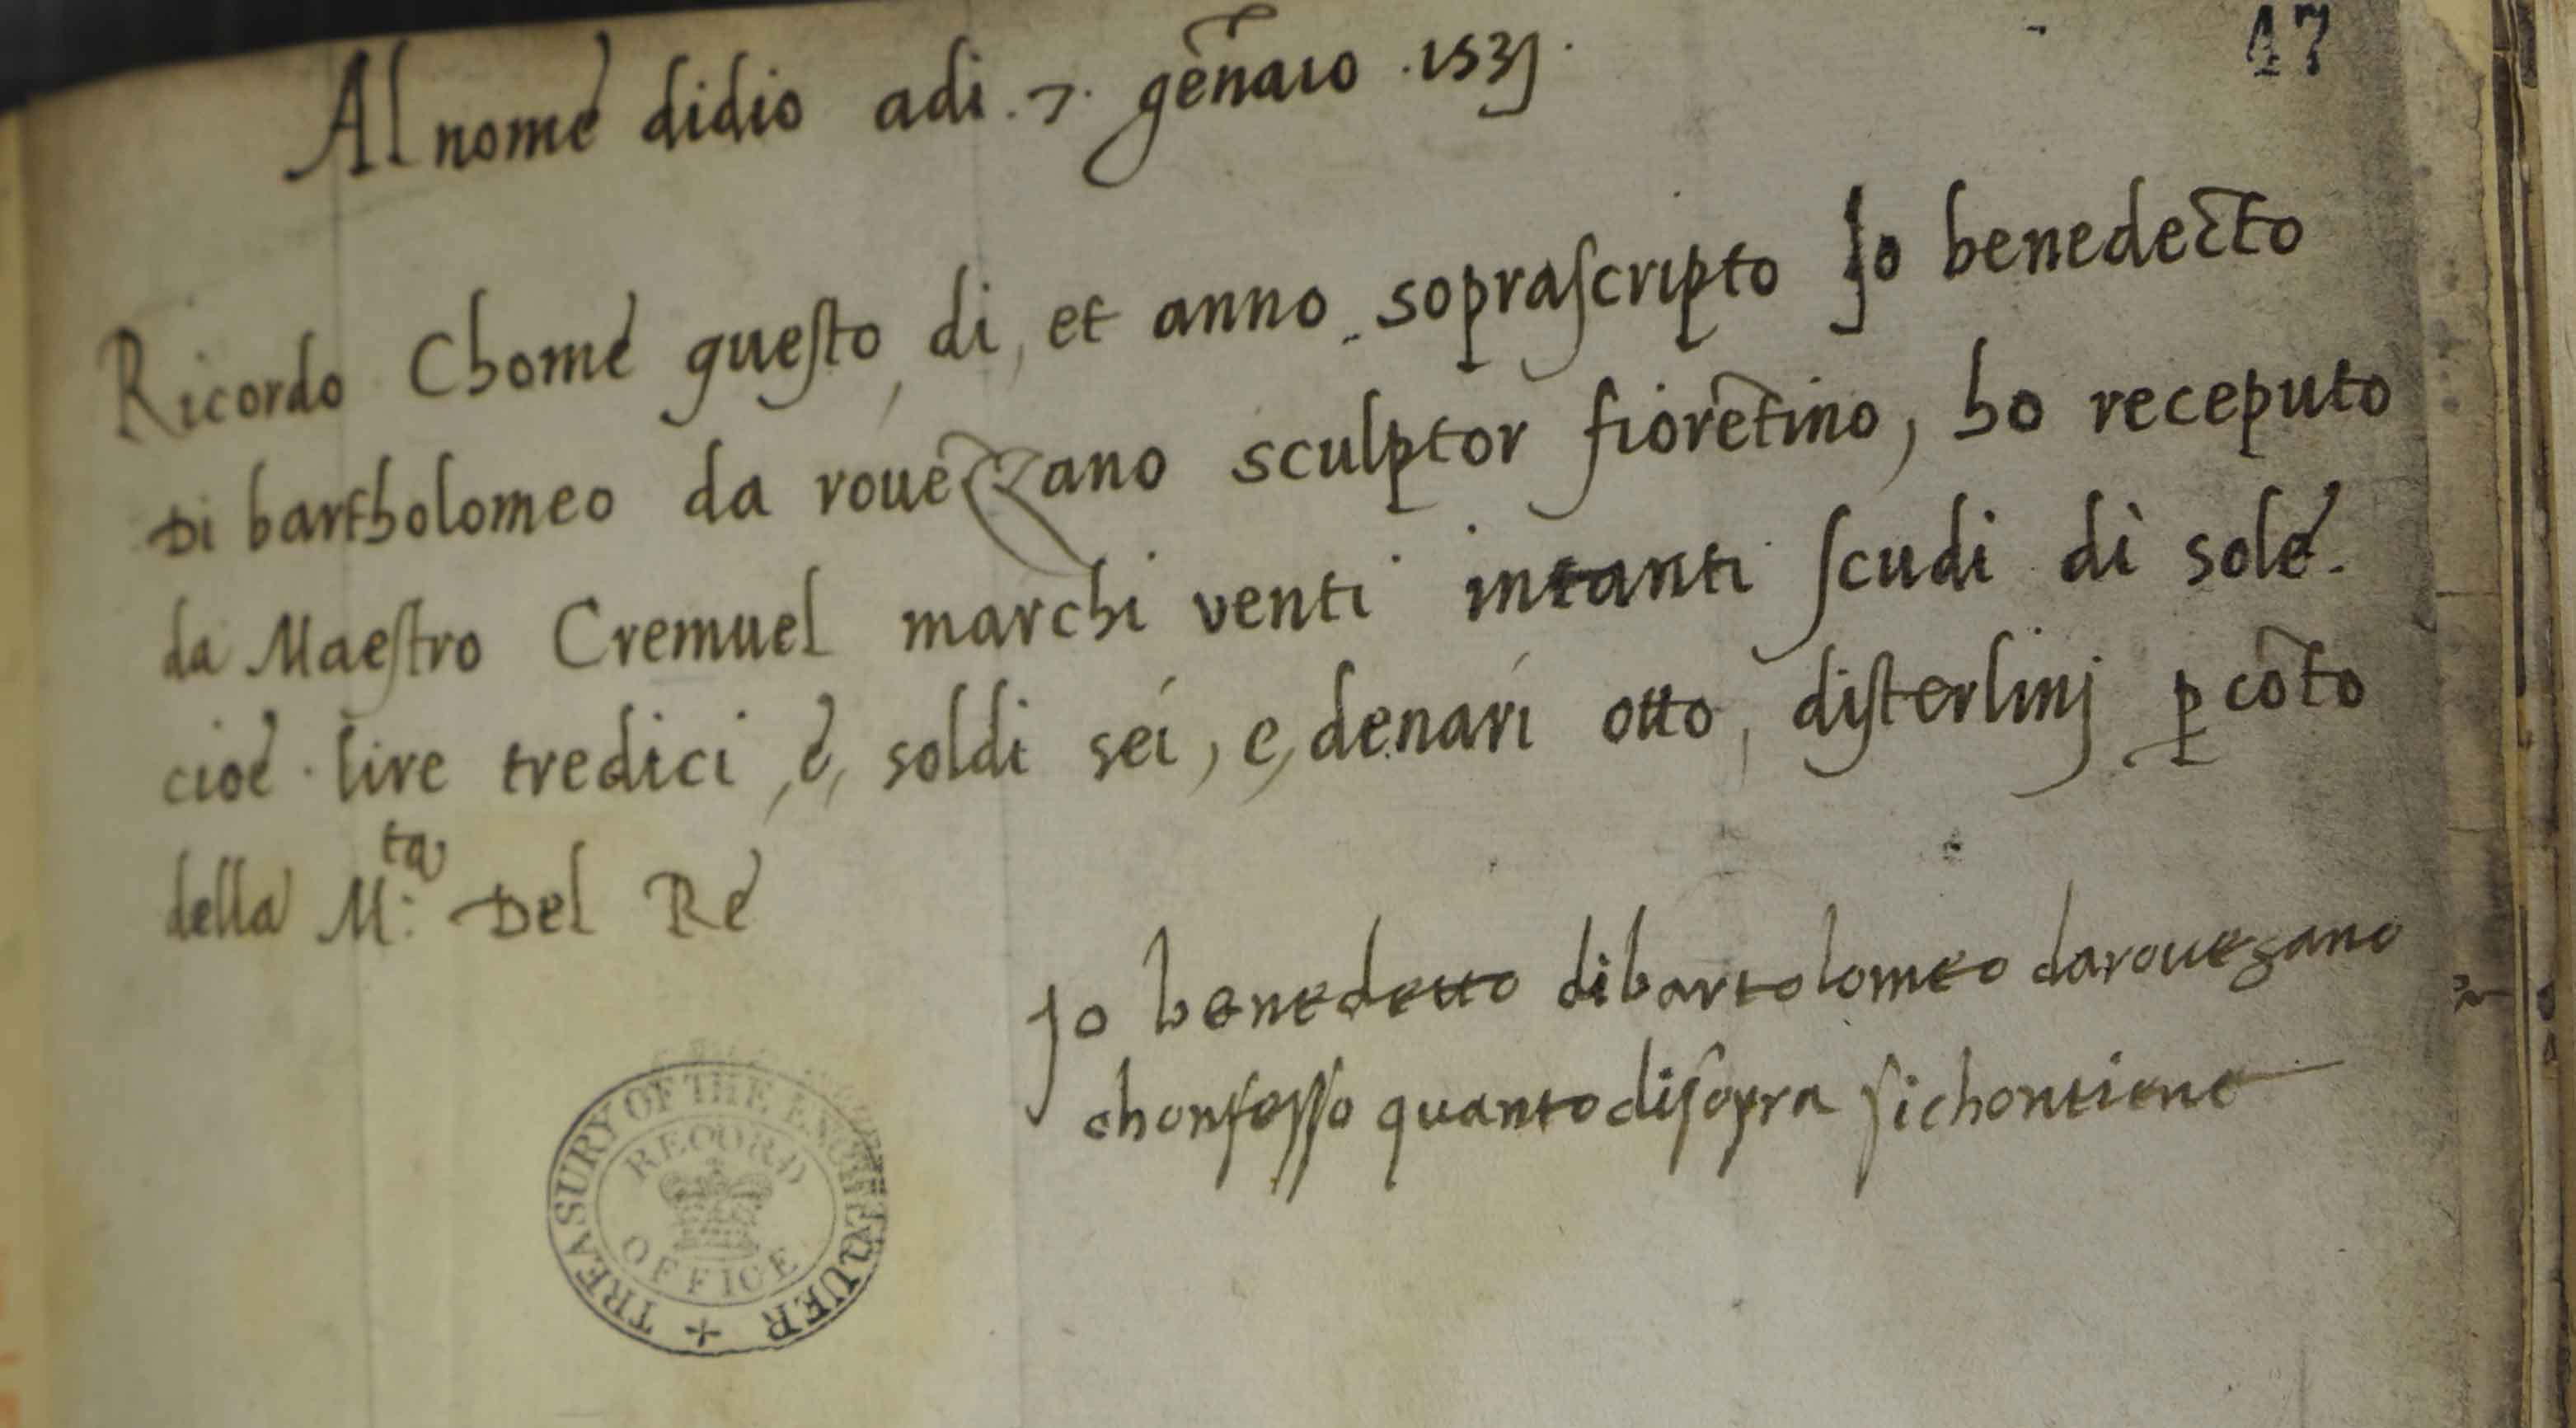 Cromwell referred to as 'Cremuel' in this receipt for payment to the Florentine sculptor Benedict di Bartolemo da Rovezzano (SP 1/65, f.47).